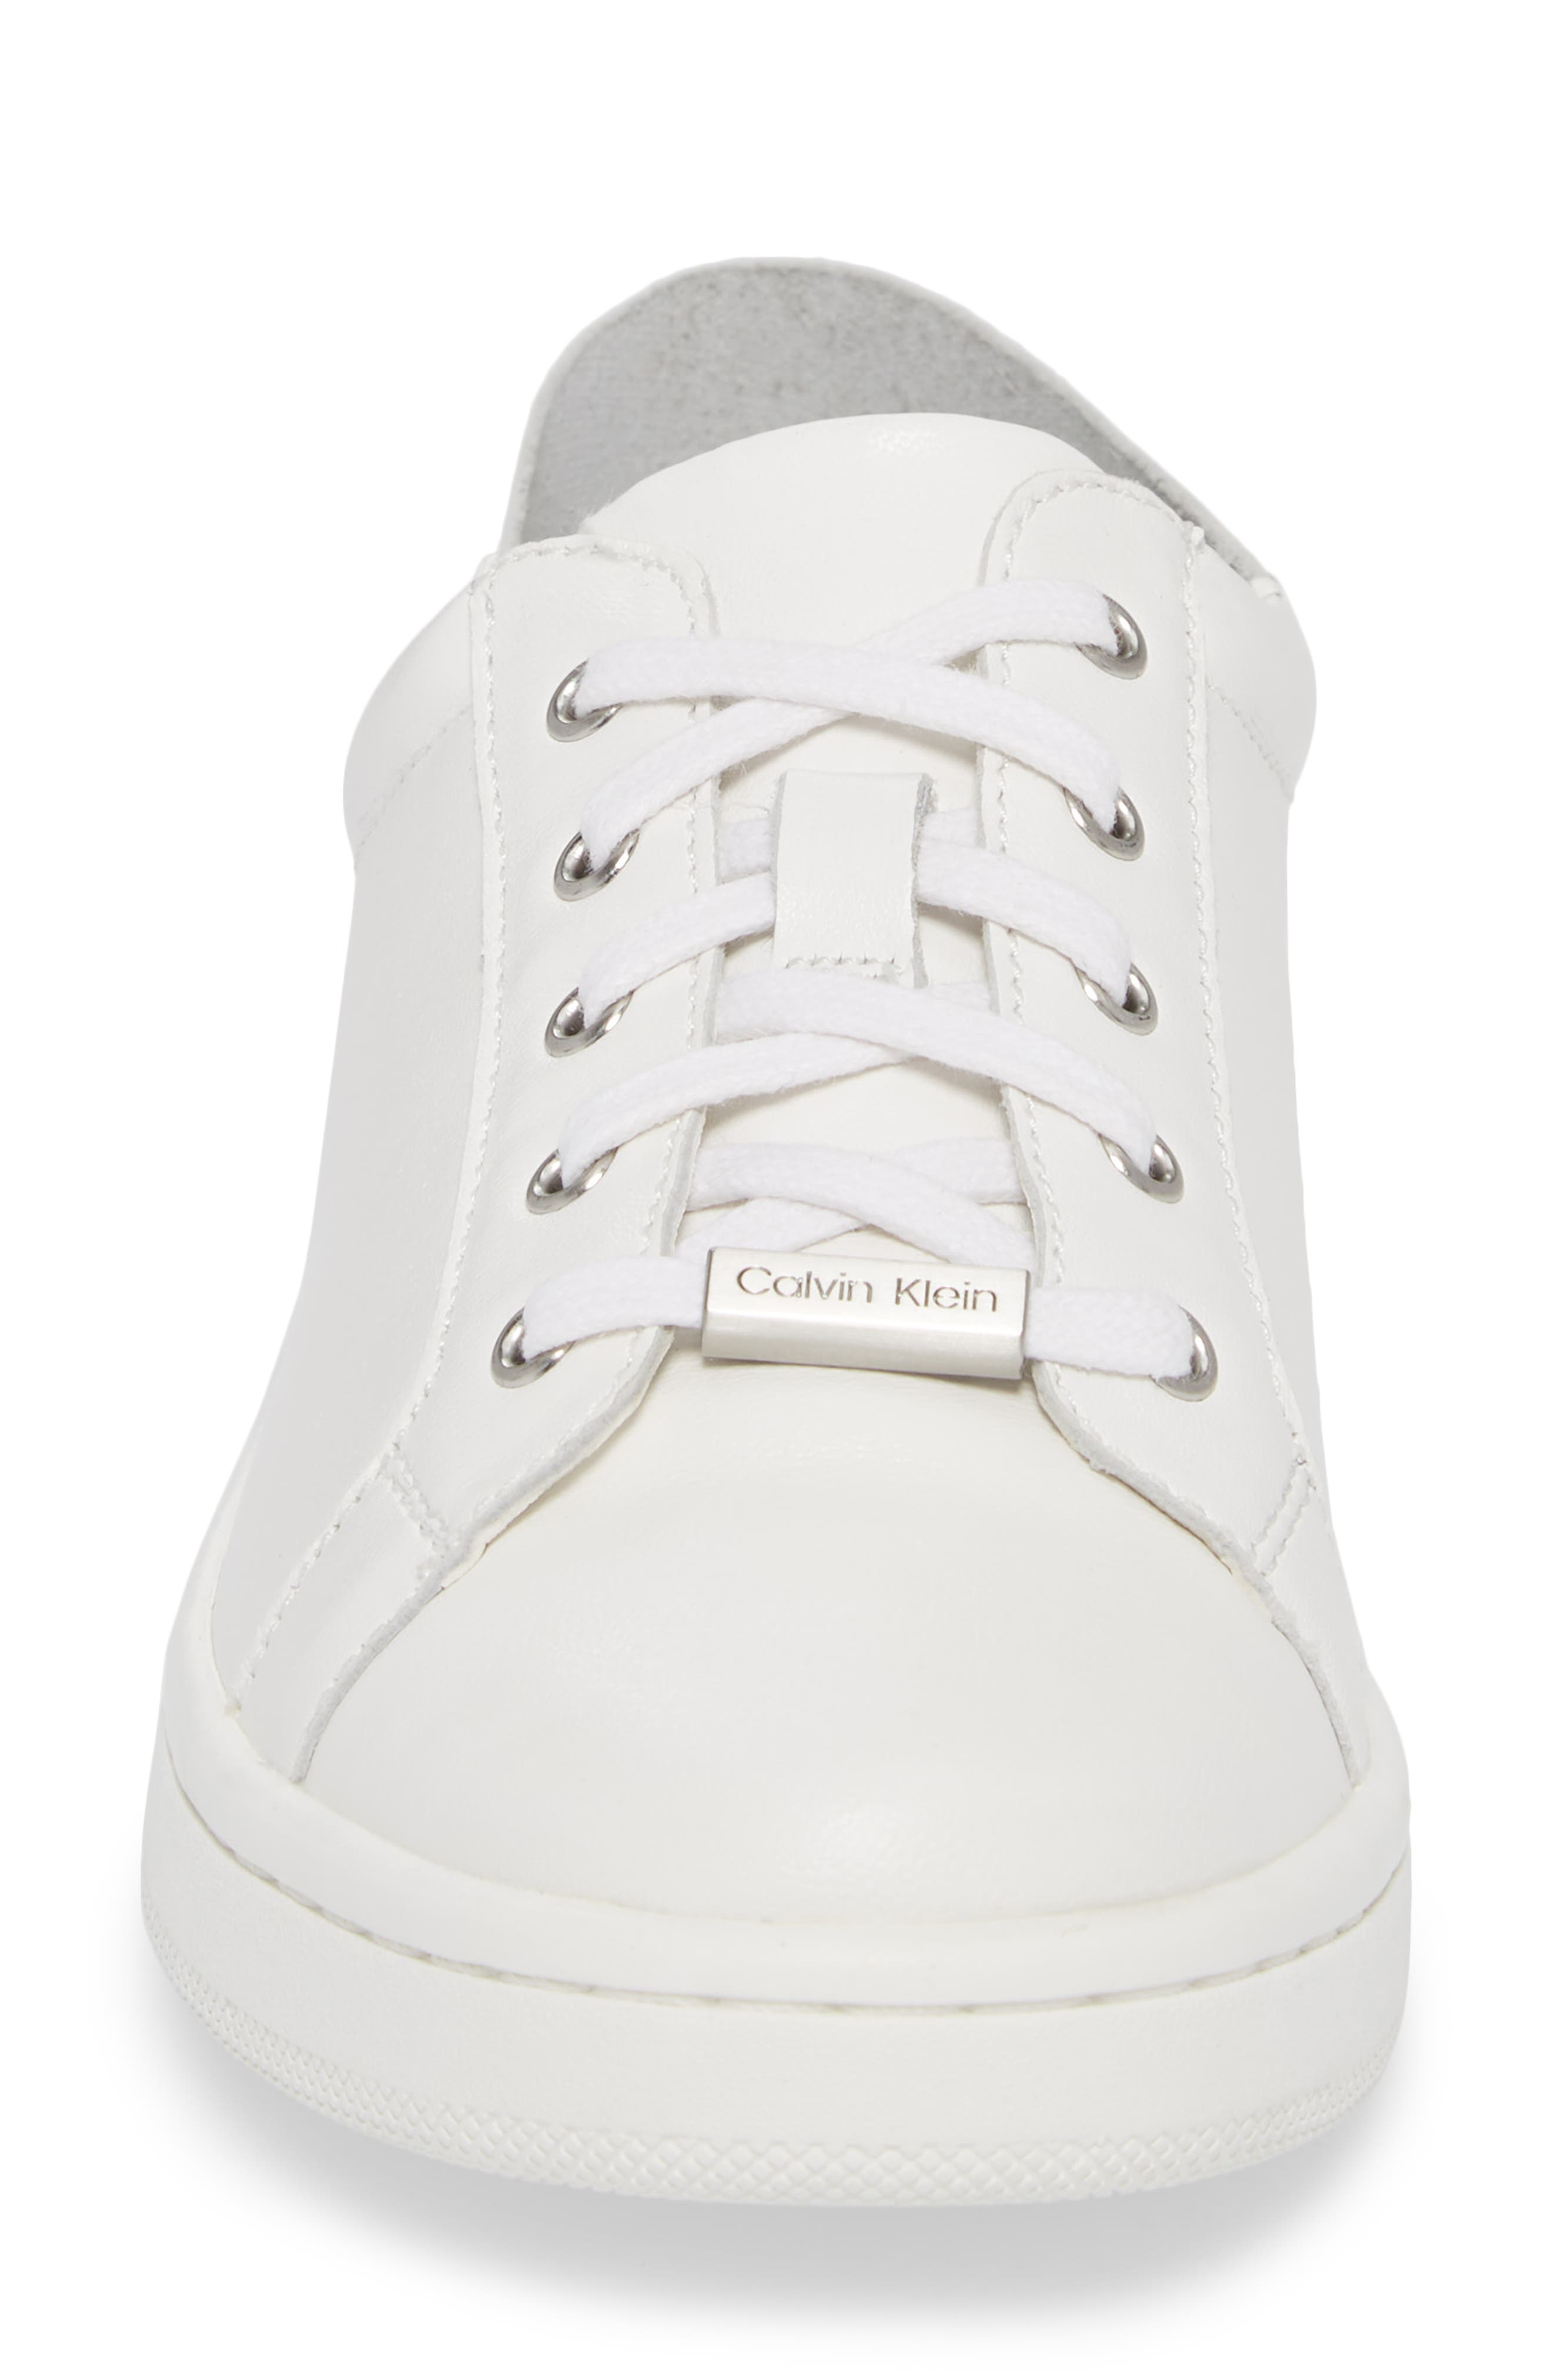 Danica Convertible Sneaker,                             Alternate thumbnail 5, color,                             White/ White Leather